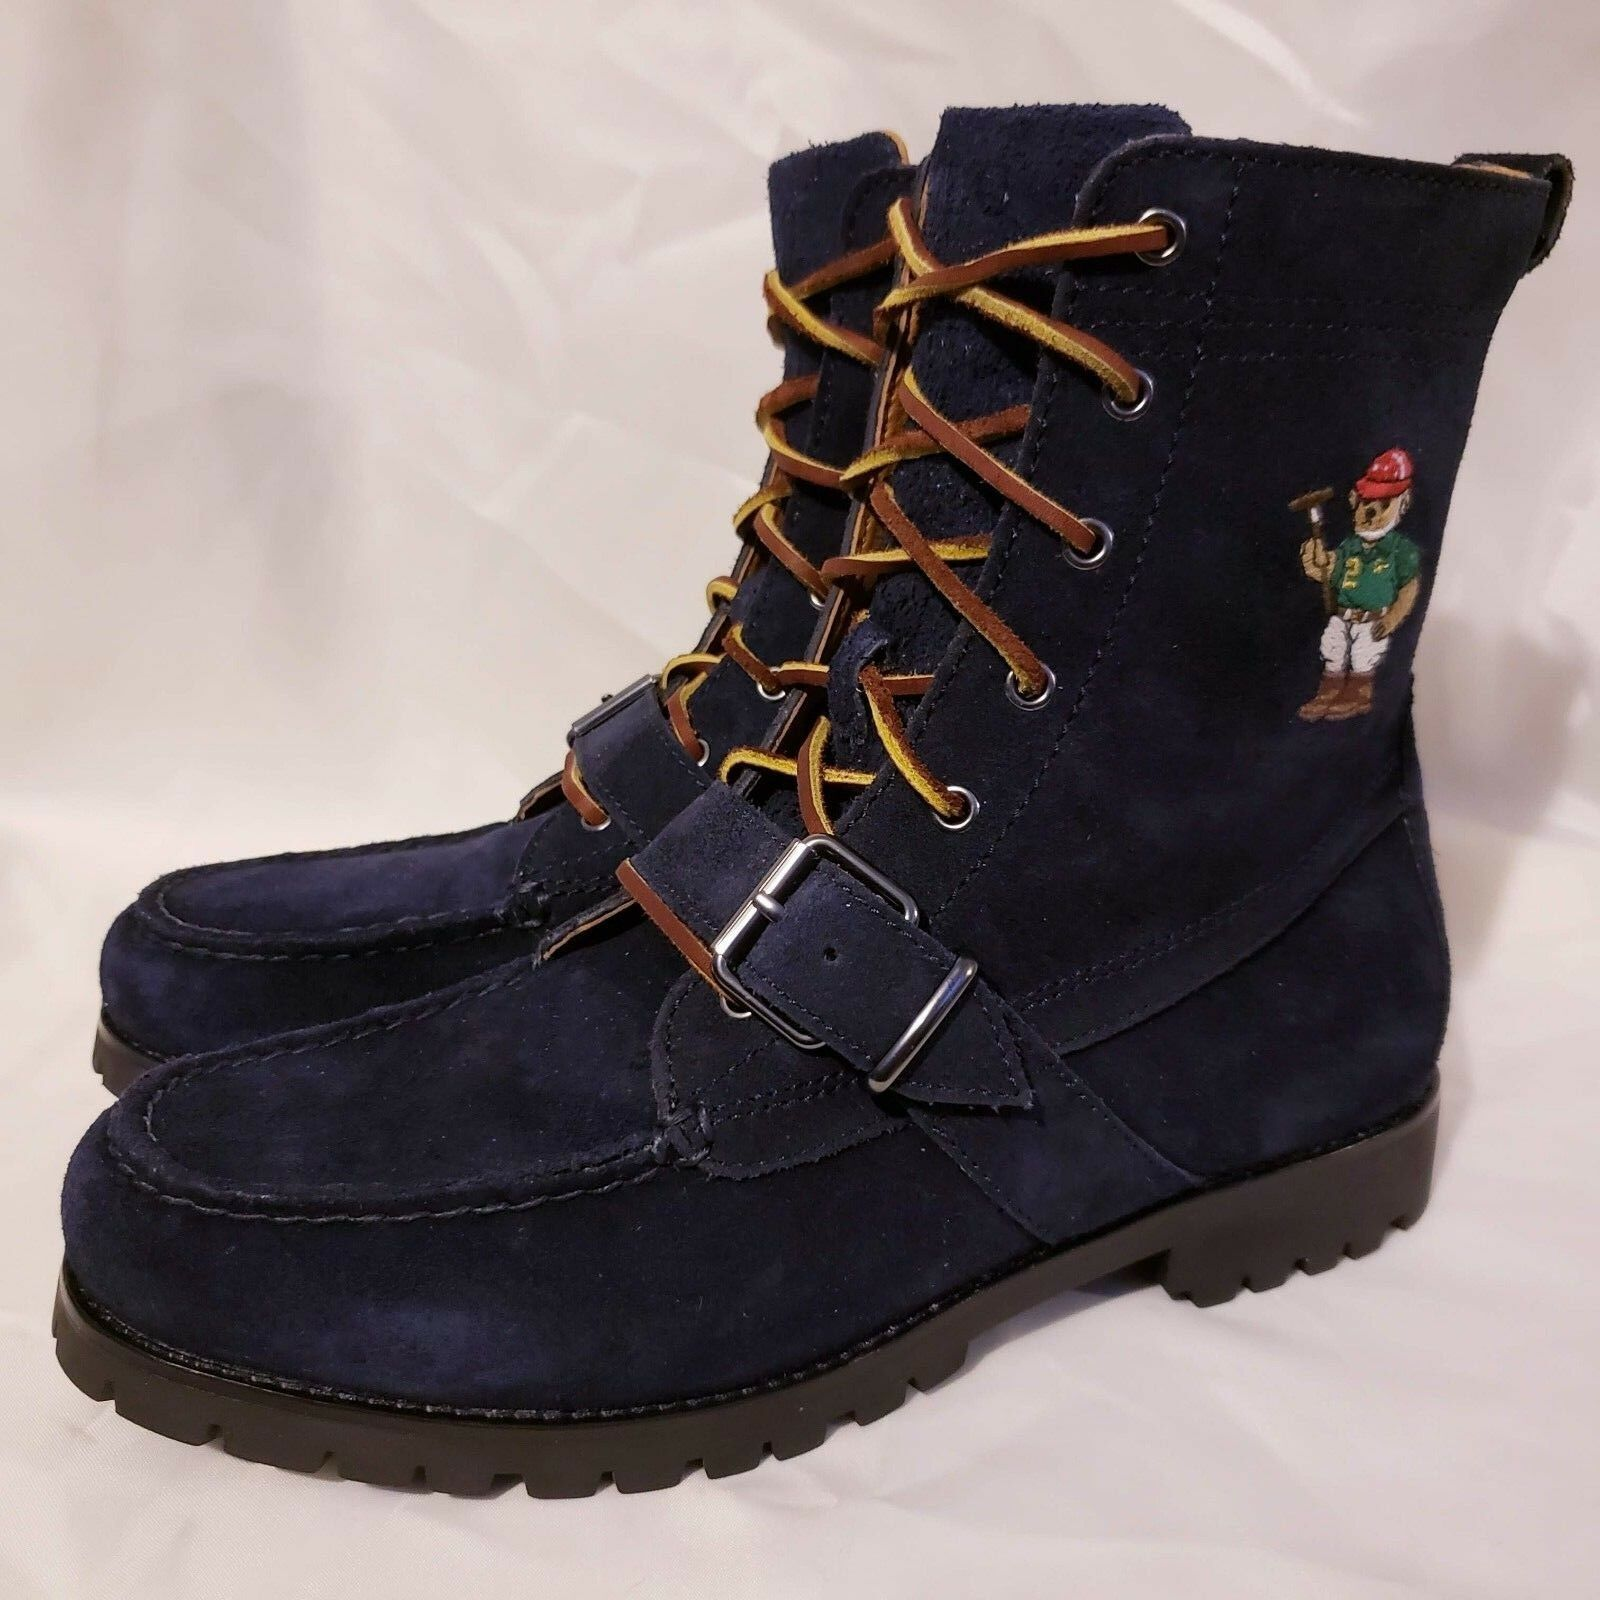 Polo Ralph Lauren Ranger Mallet Bear boots navy blue suede new toddlers shoes